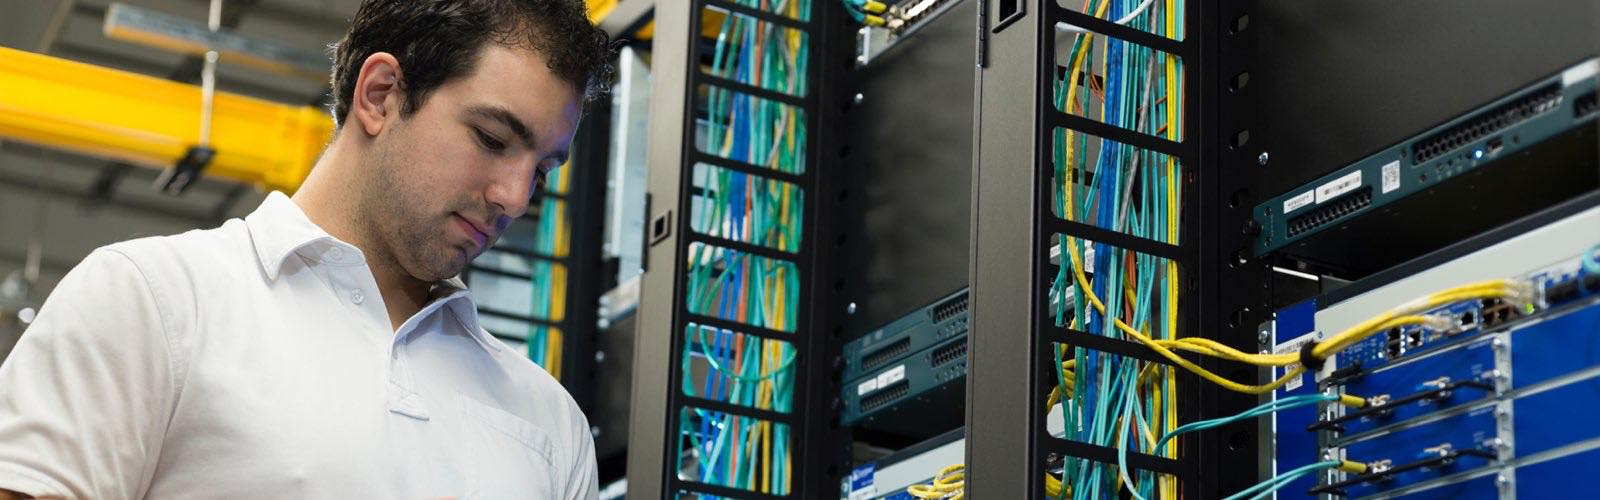 Information technology professional looking at tablet in front of server rack